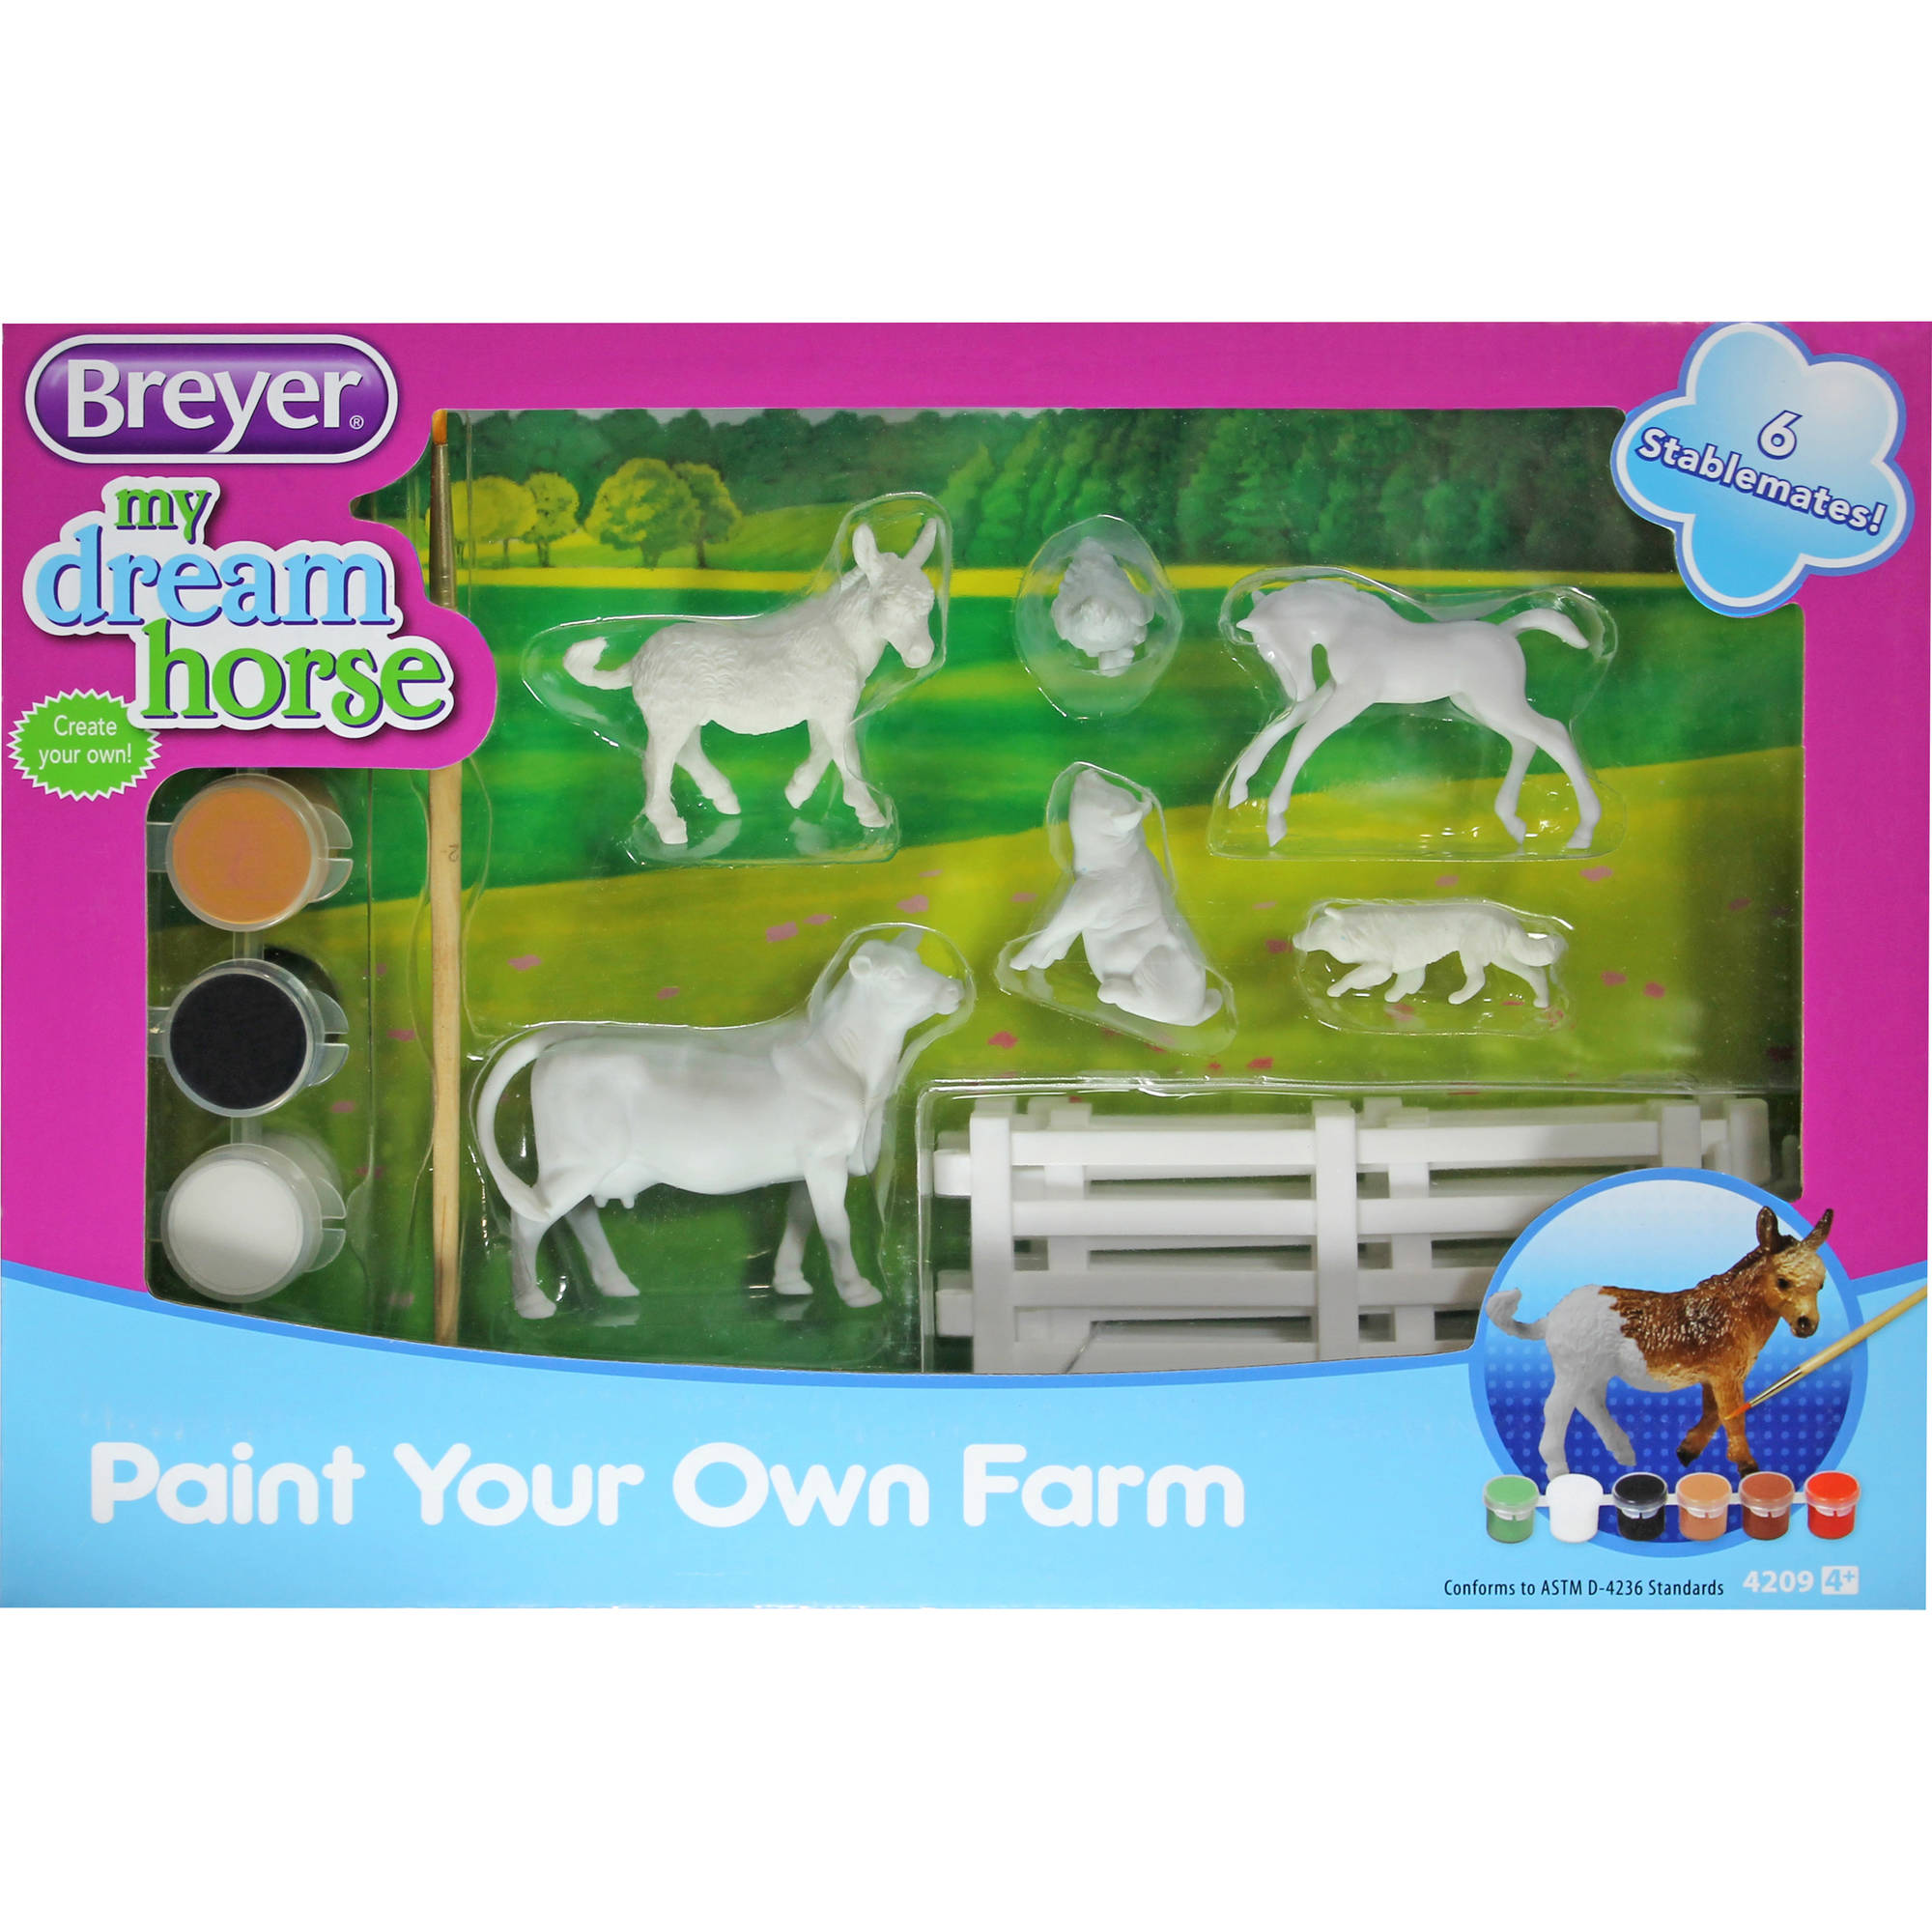 Breyer Stablemates My Dream Horse Paint Your Own Farm with 6 Animals by Breyer